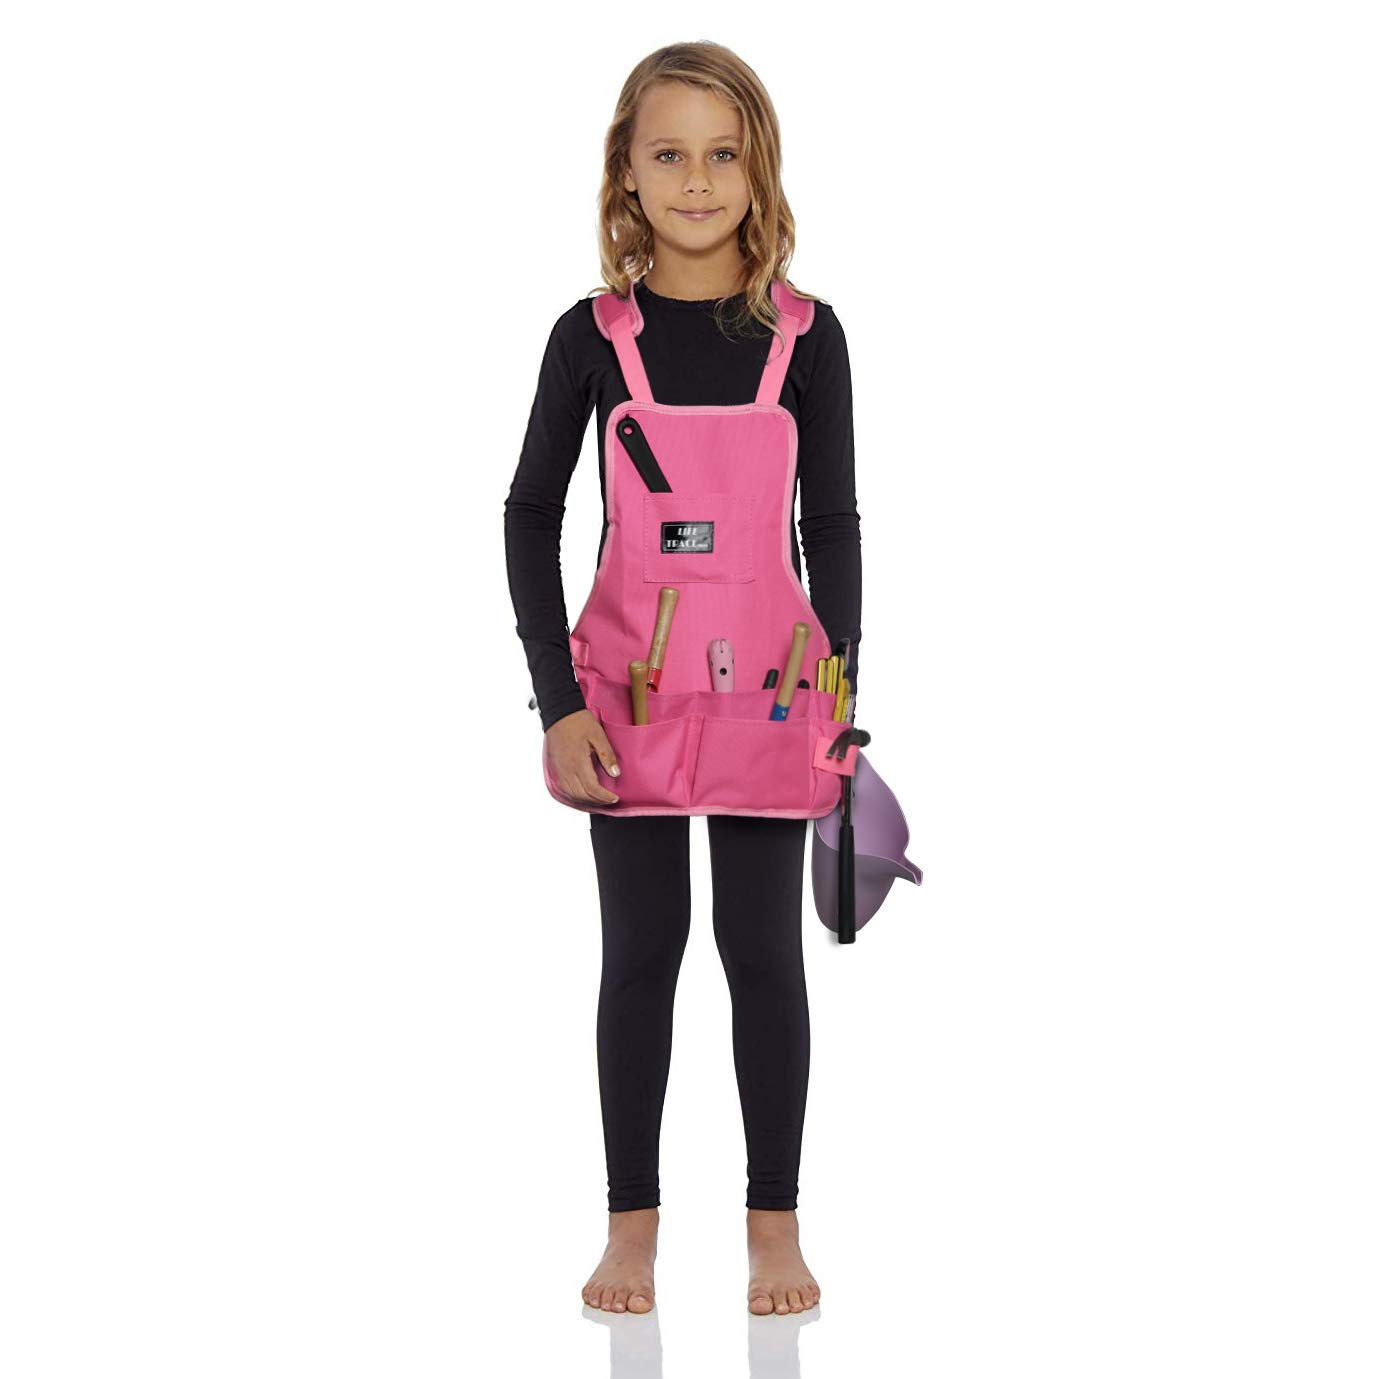 LIFE TRACE Kids Apron, with 10 Pockets, for Gardening Care,Painting, Pretend Play, Cooking, Thick-Padded Shoulder Straps, Adjustable Cross, Waterproof,Pink Color, XXS-S Size